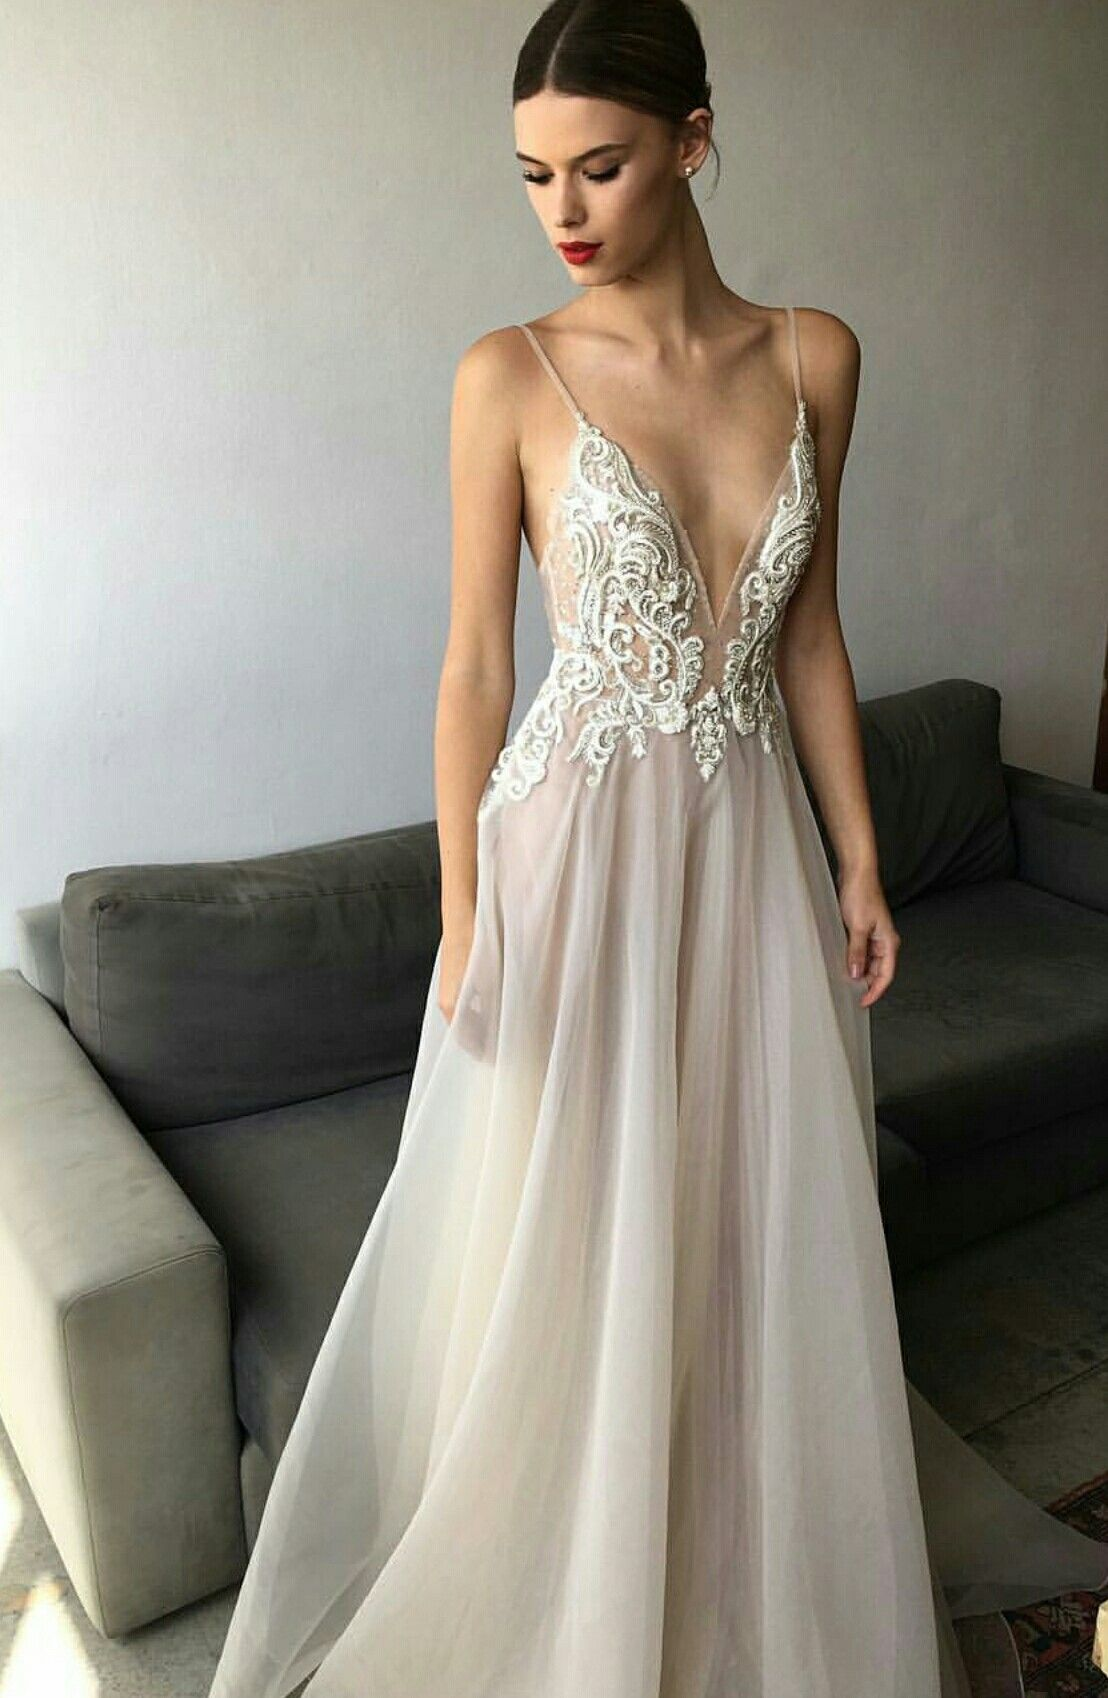 Pin by maria carolina on fdg pinterest prom teen prom and gowns